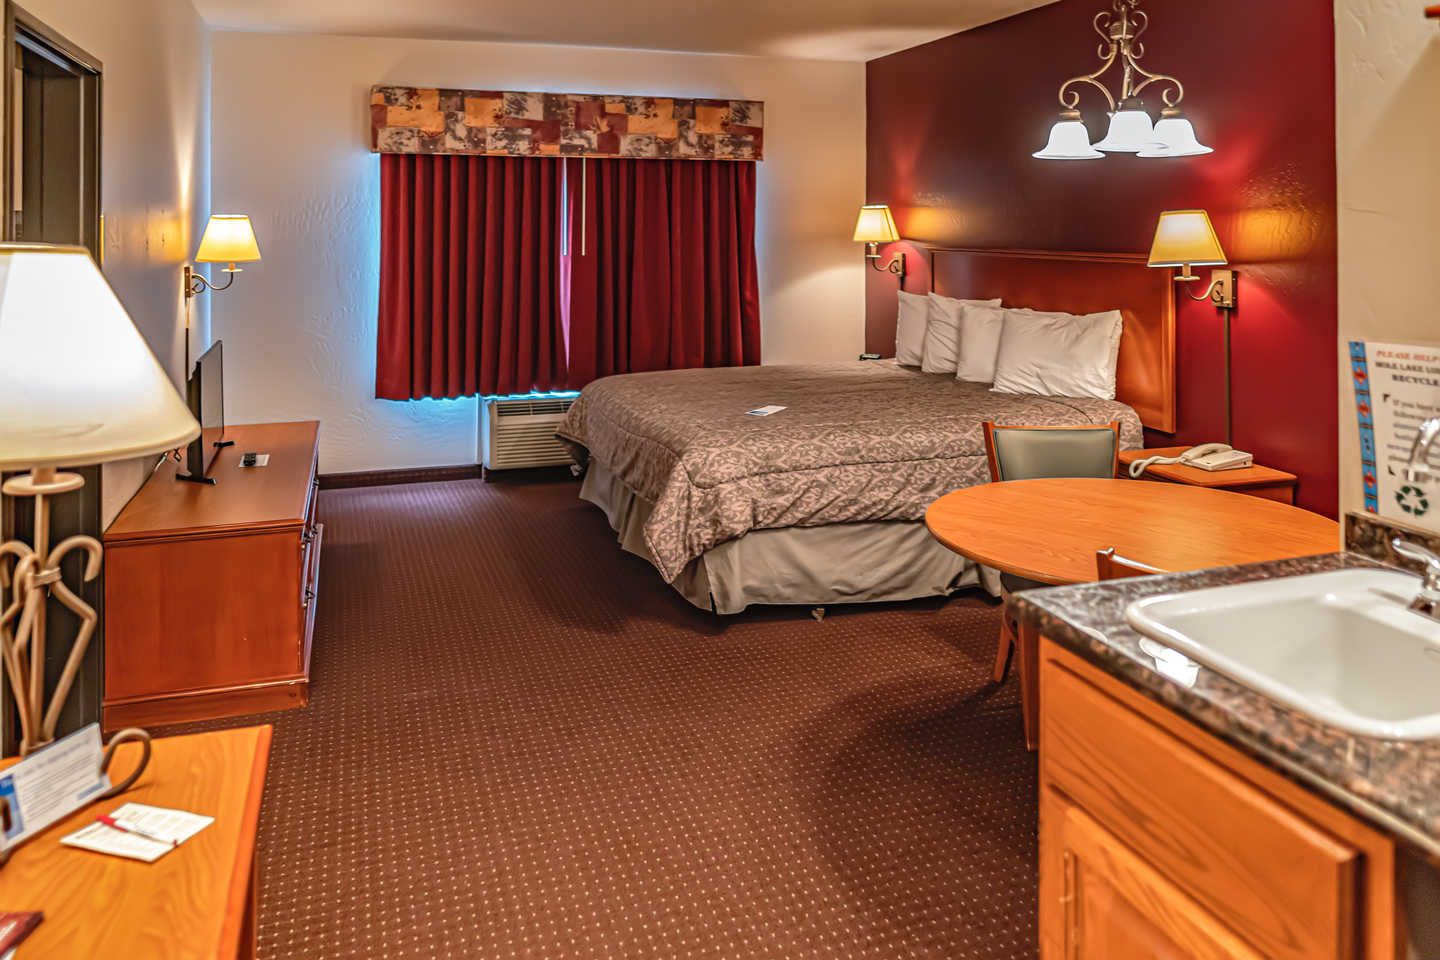 Mole Lake Casino Lodge In Crandon Wisconsin Offers The Best Hotel Deals On Family Suite Rooms